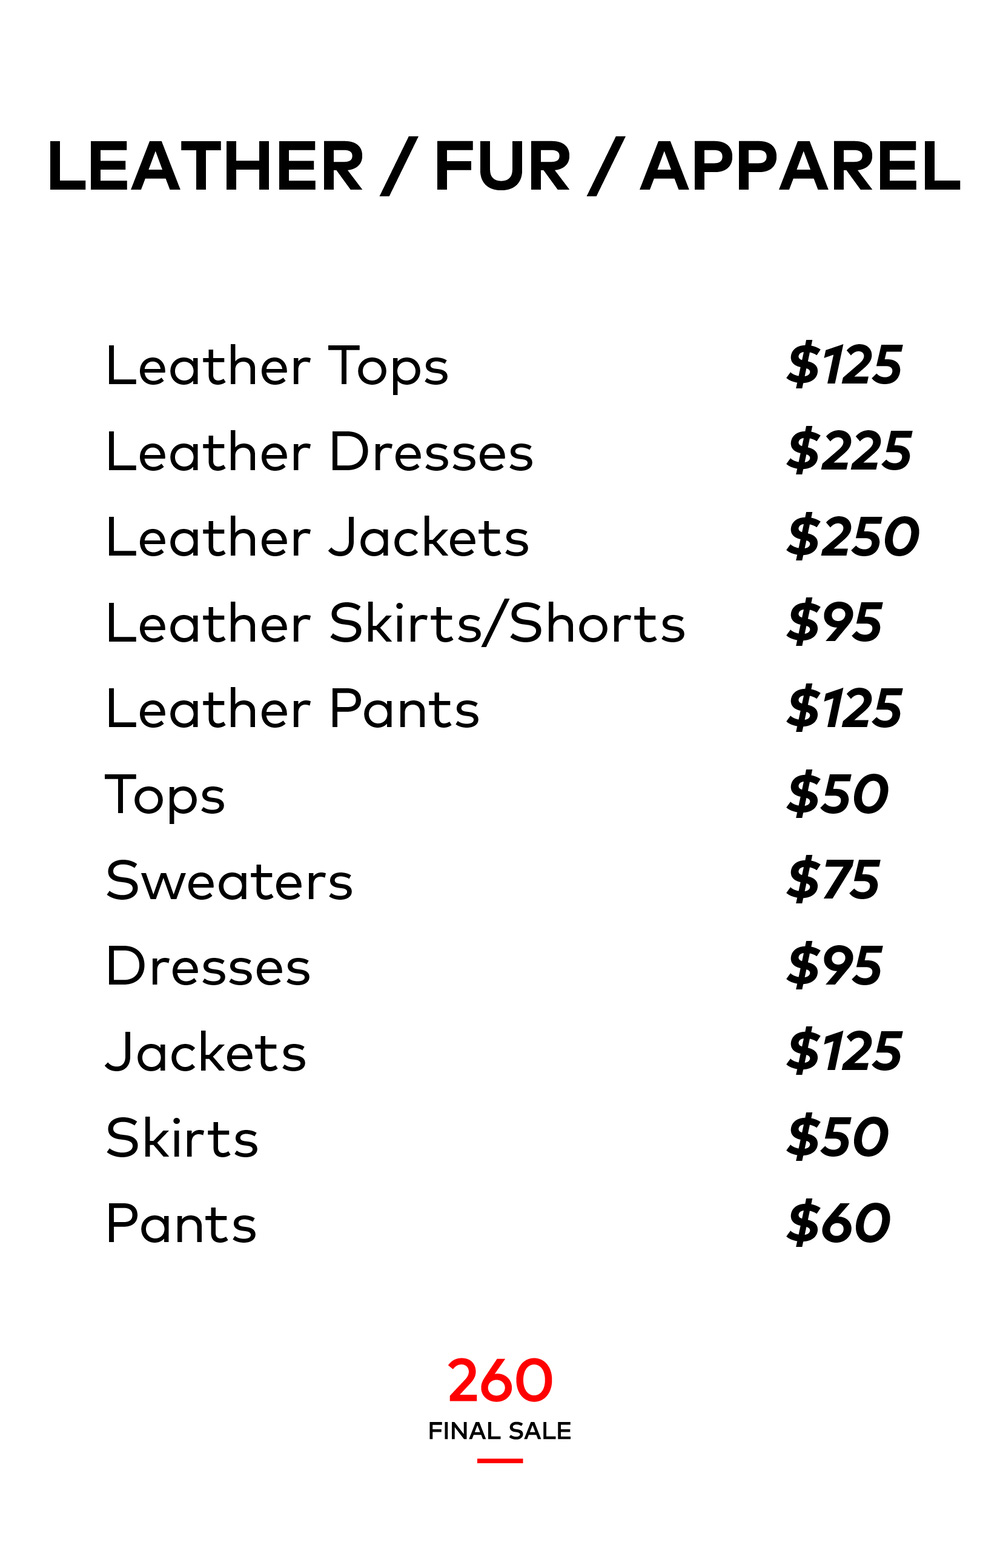 260 Sample Sale Final Sale Price List